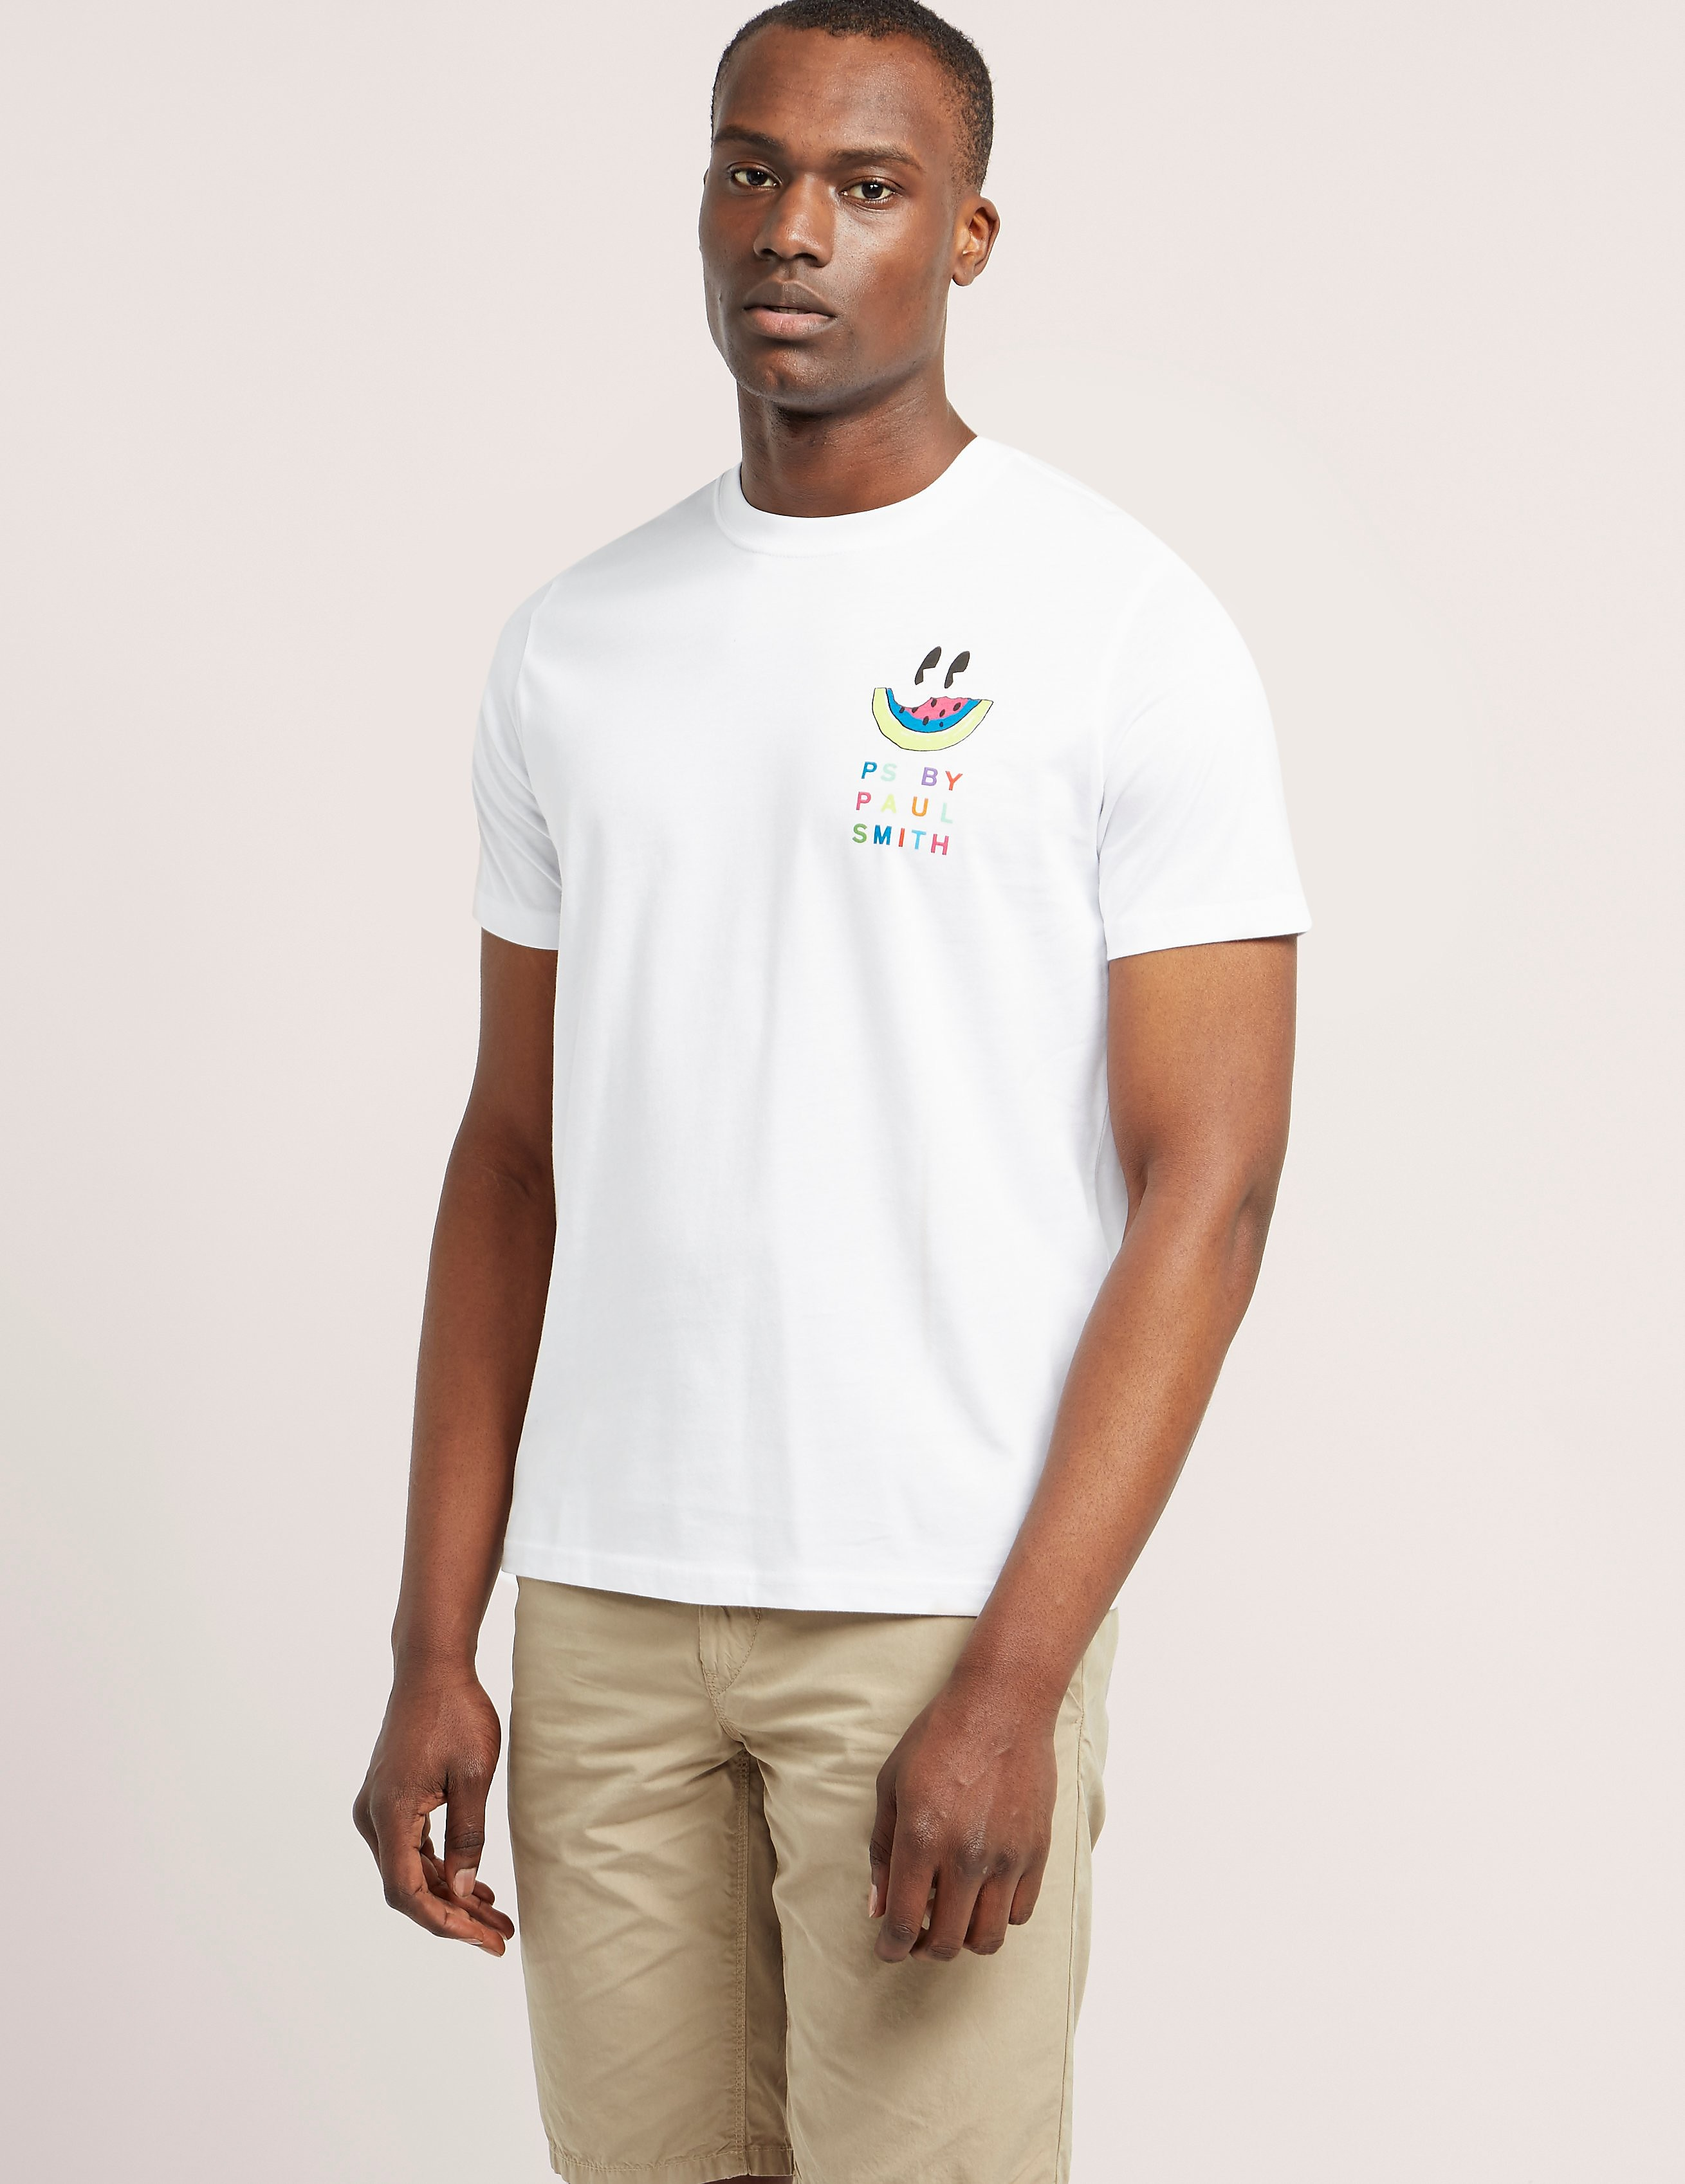 Paul Smith Watermelons Print T-shirt